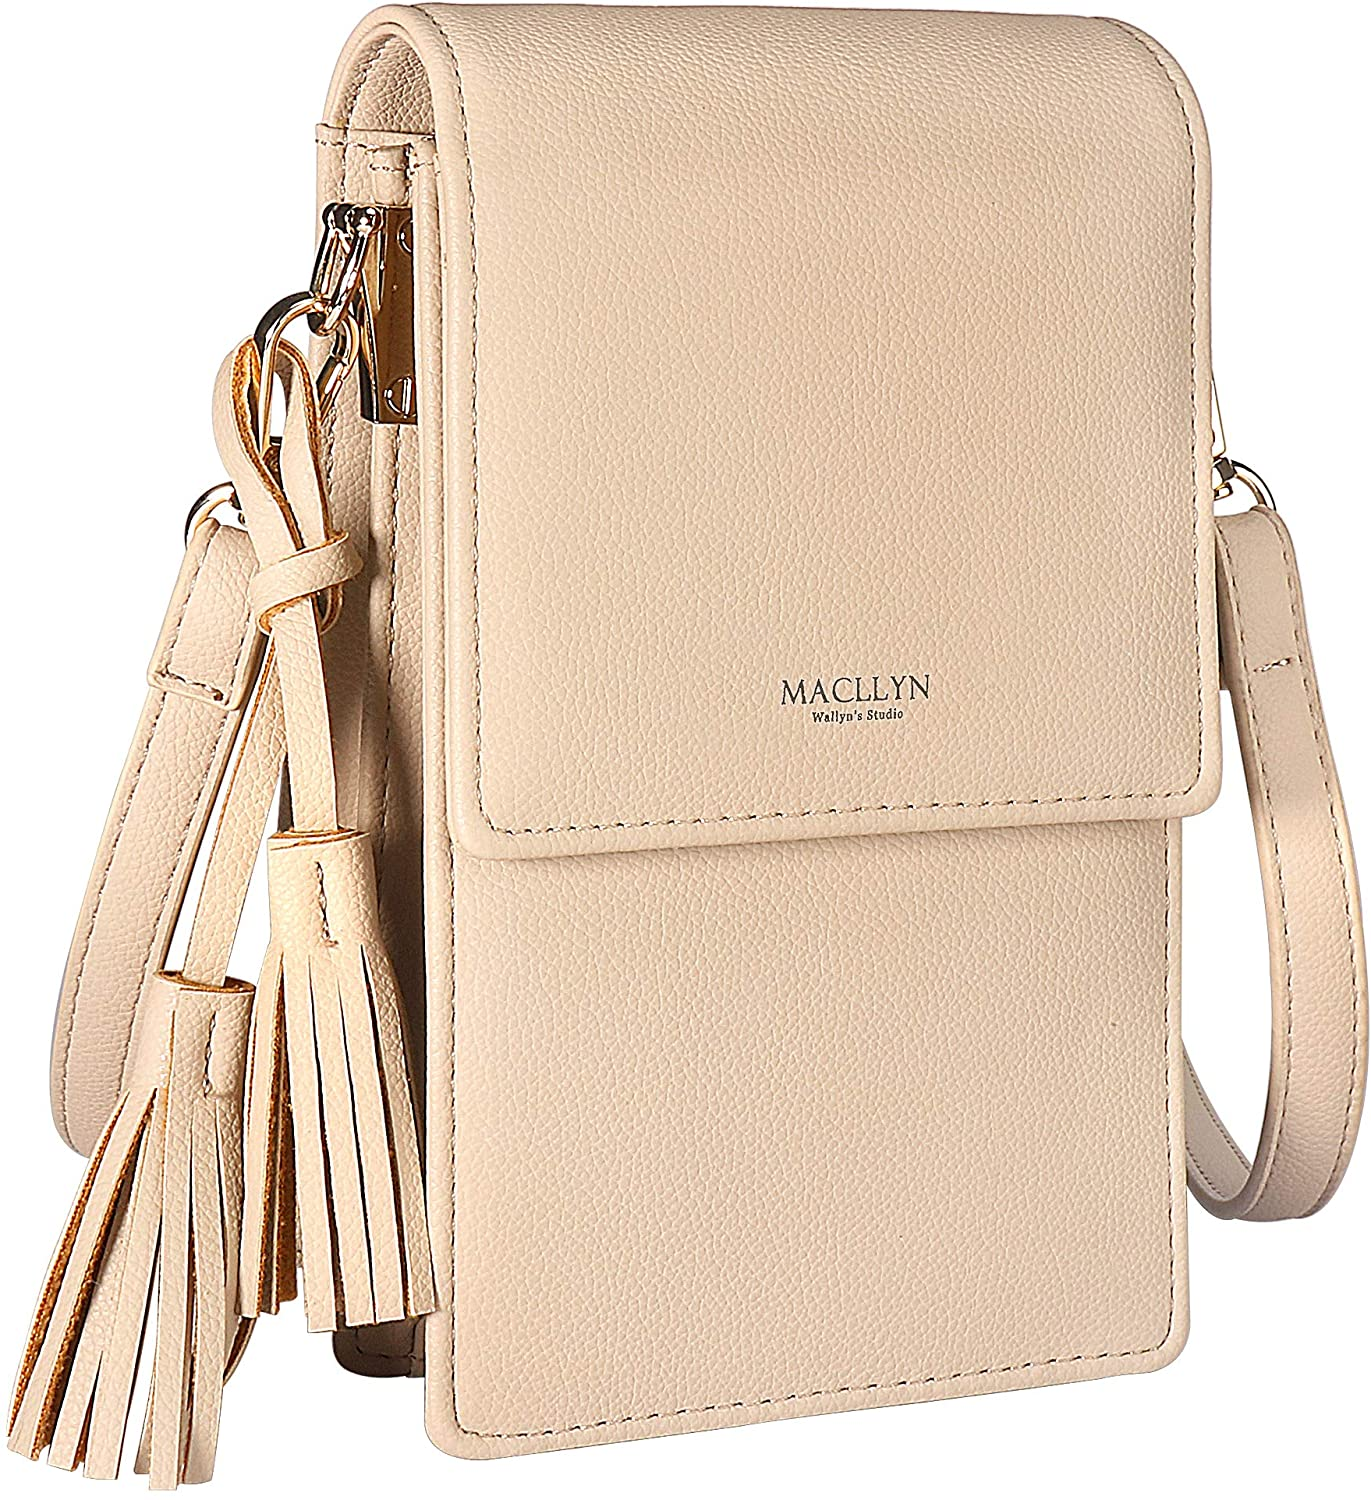 MACLLYN Small Crossbody Bag Cell Phone Purse Wallet with Credit Card Slots for Women